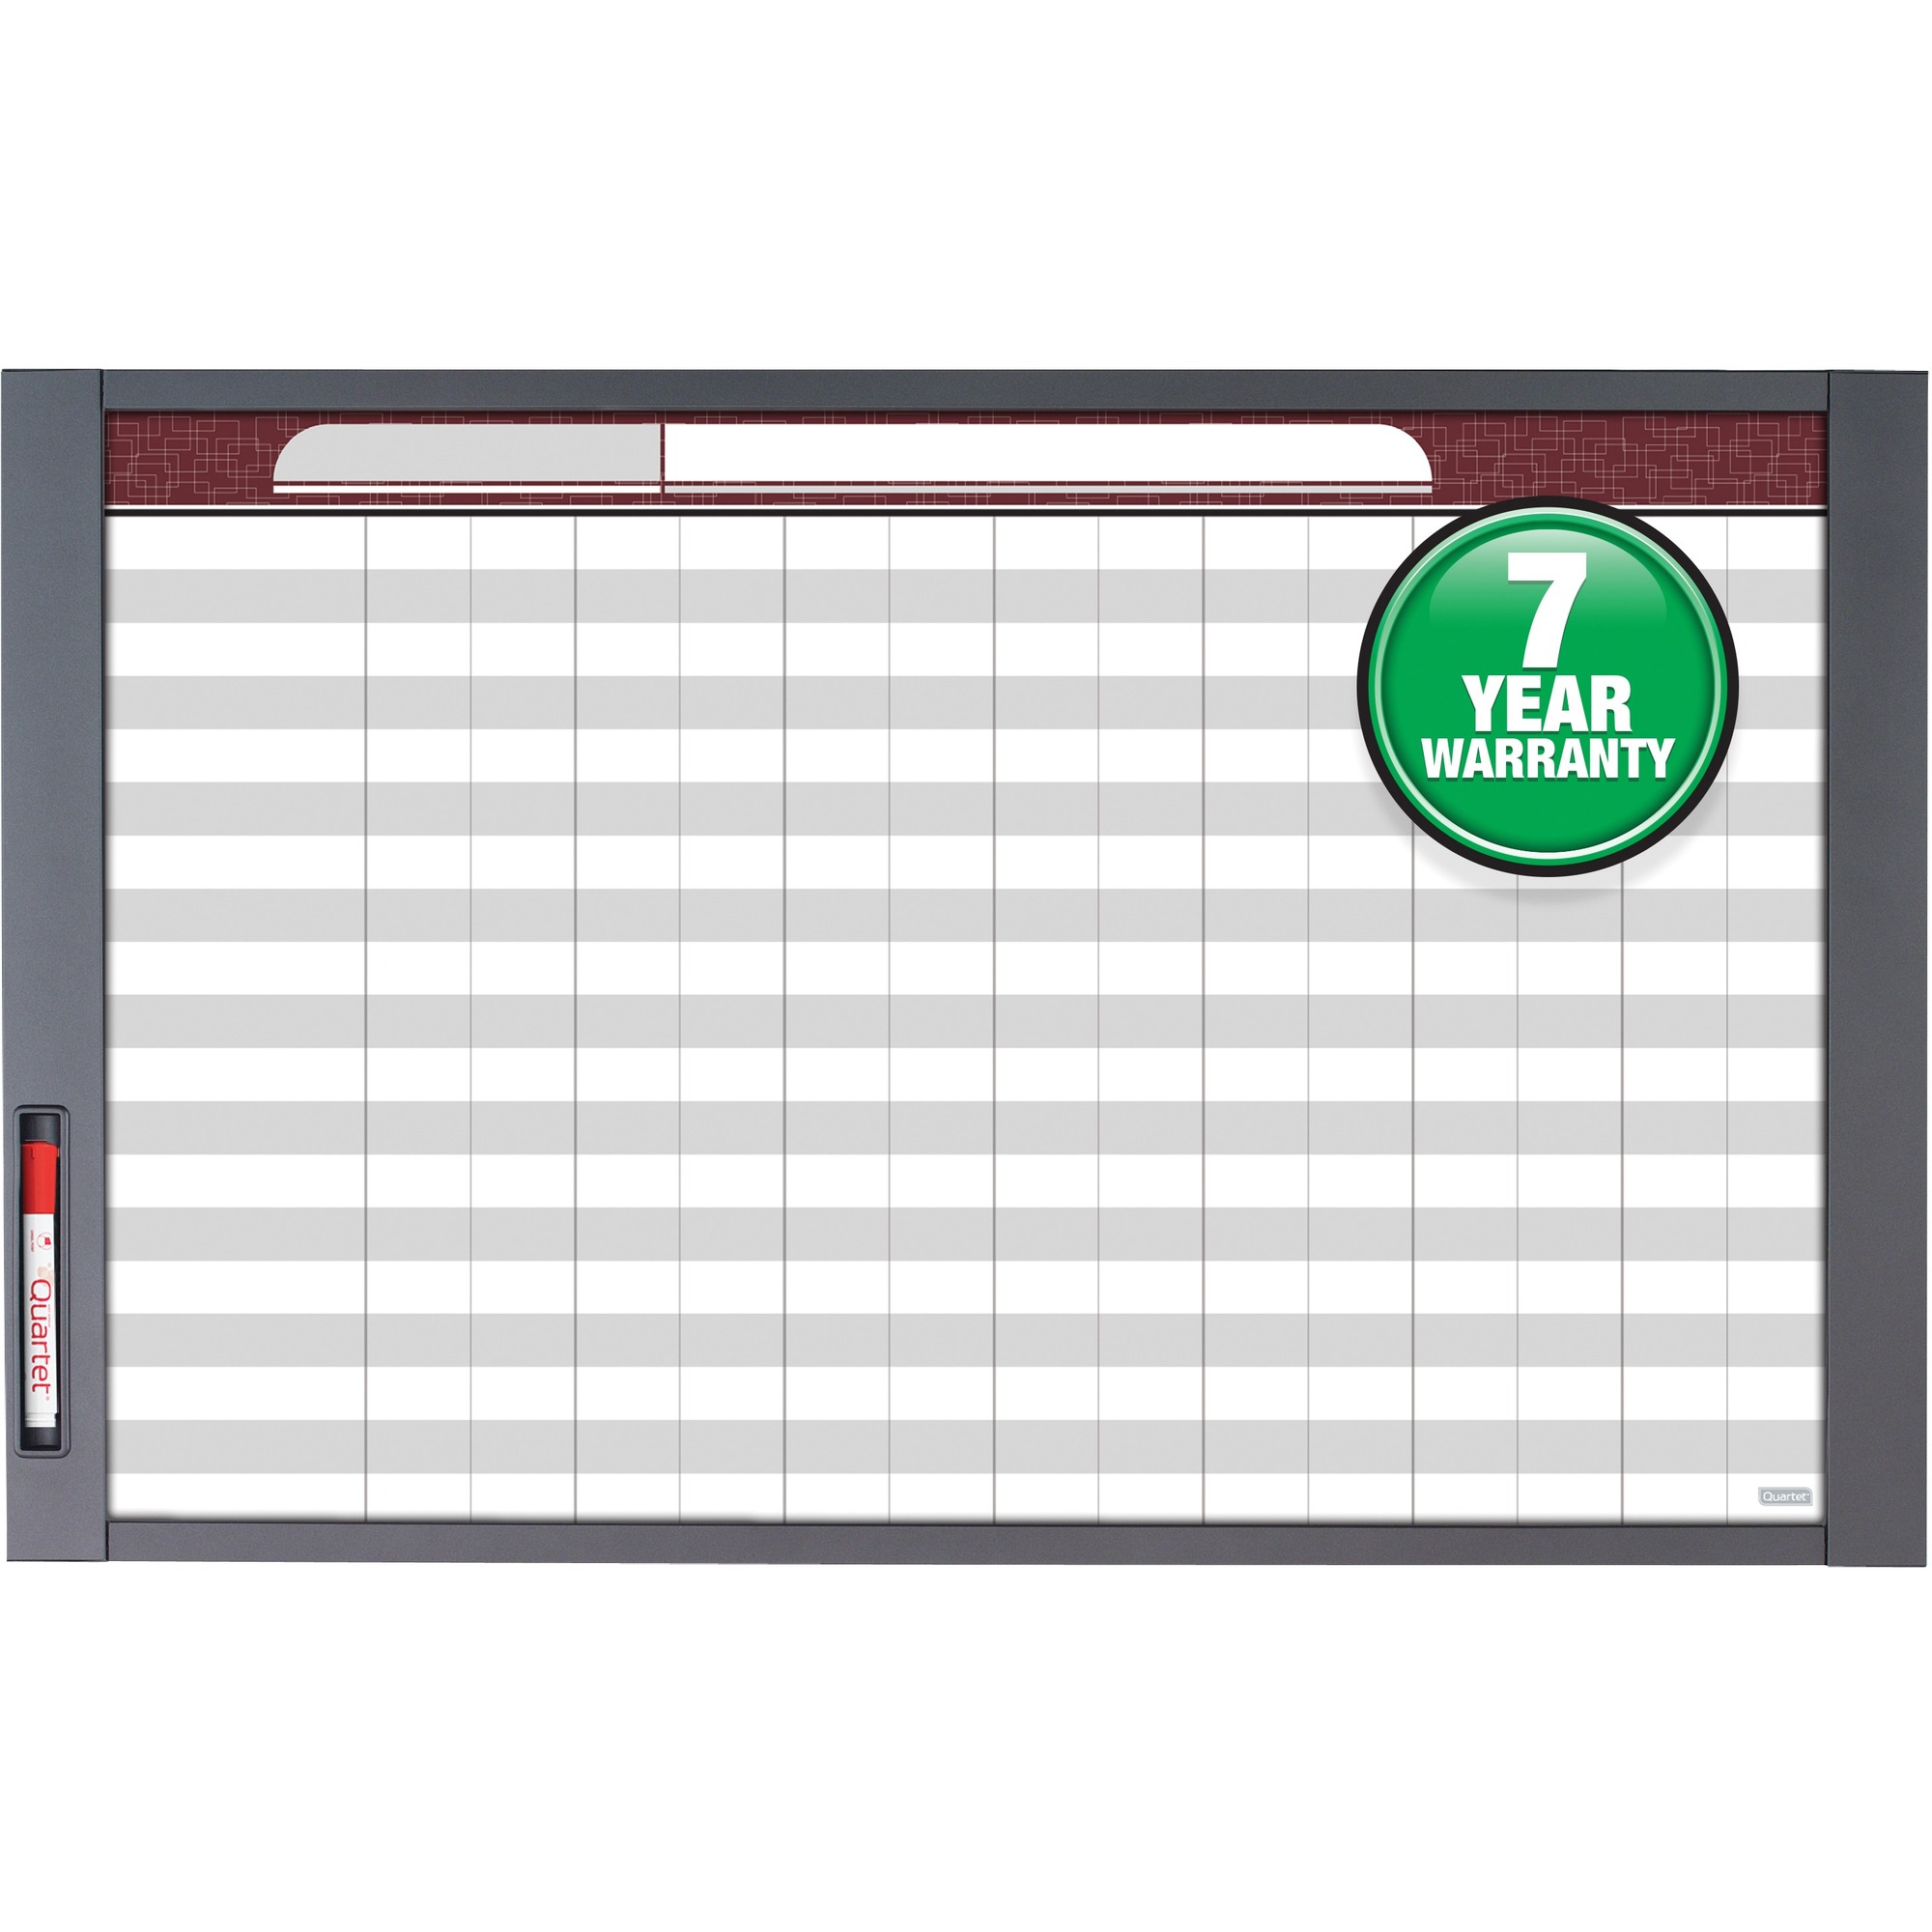 Acco Brands Corporation Quartet® Inview Custom Whiteboard - 37.5 (3.1 Ft) Width X 23 (1.9 Ft) Height - White Steel Surface - Graphite Frame - Rectangle - Horizontal/vertical - Assembly Required - 1 / Each